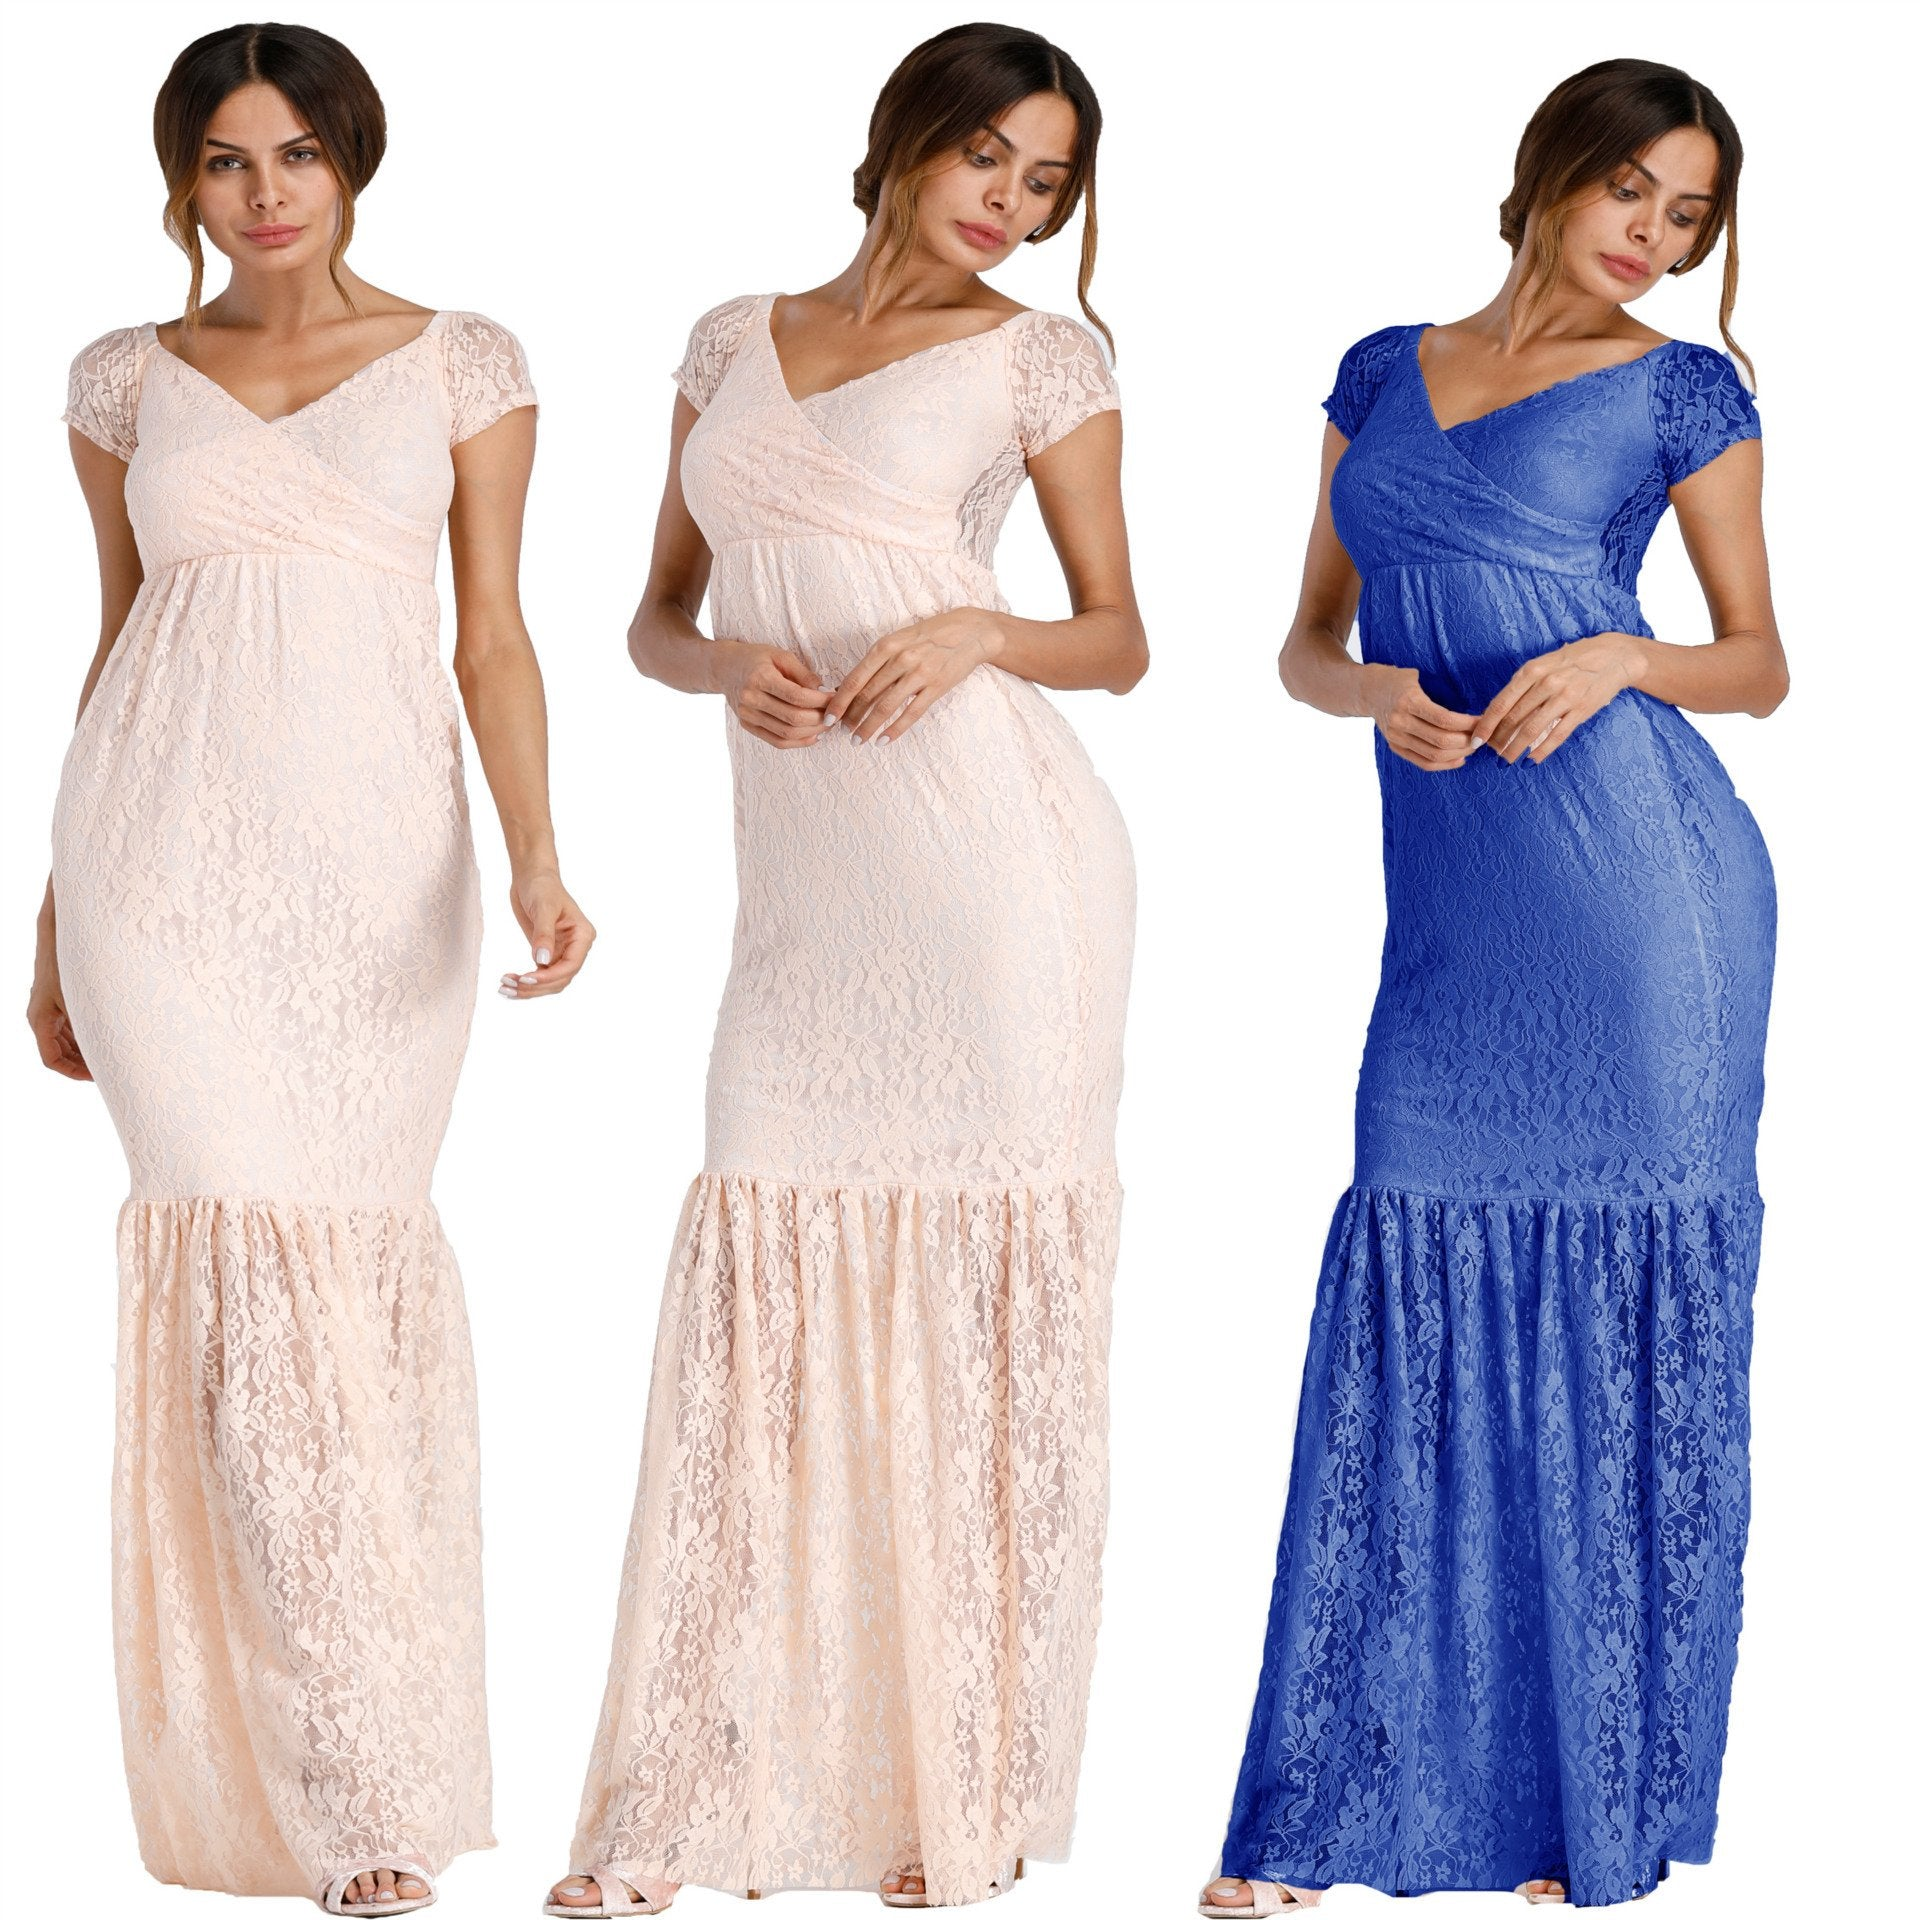 Maternity Gown Lace Maxi Maternity Dresses for Photo Shoot - asheers4u